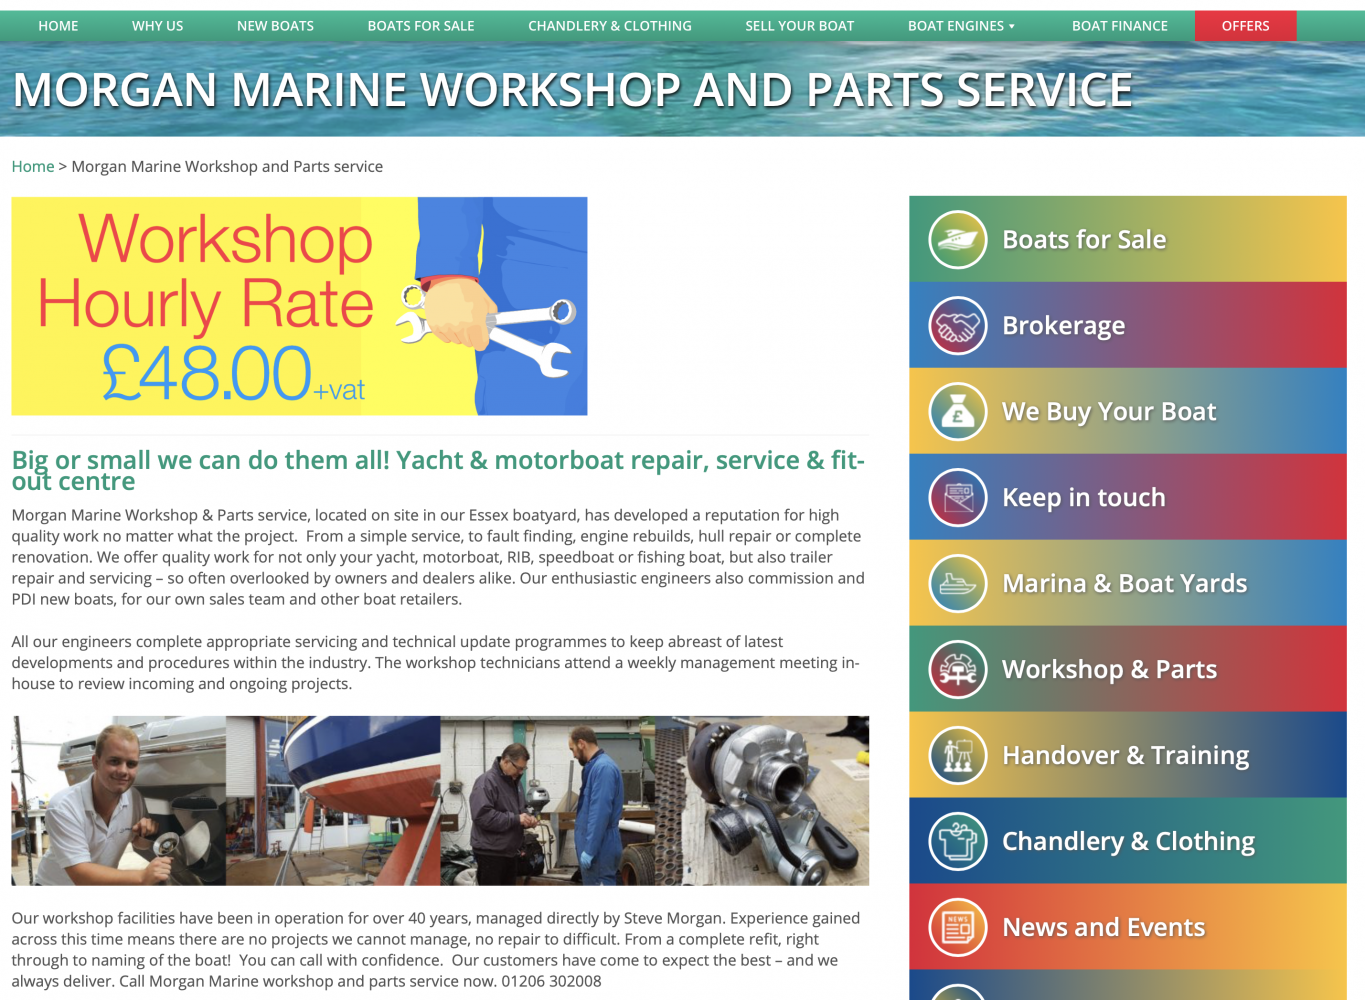 Morgan Marine Workshop and Parts service